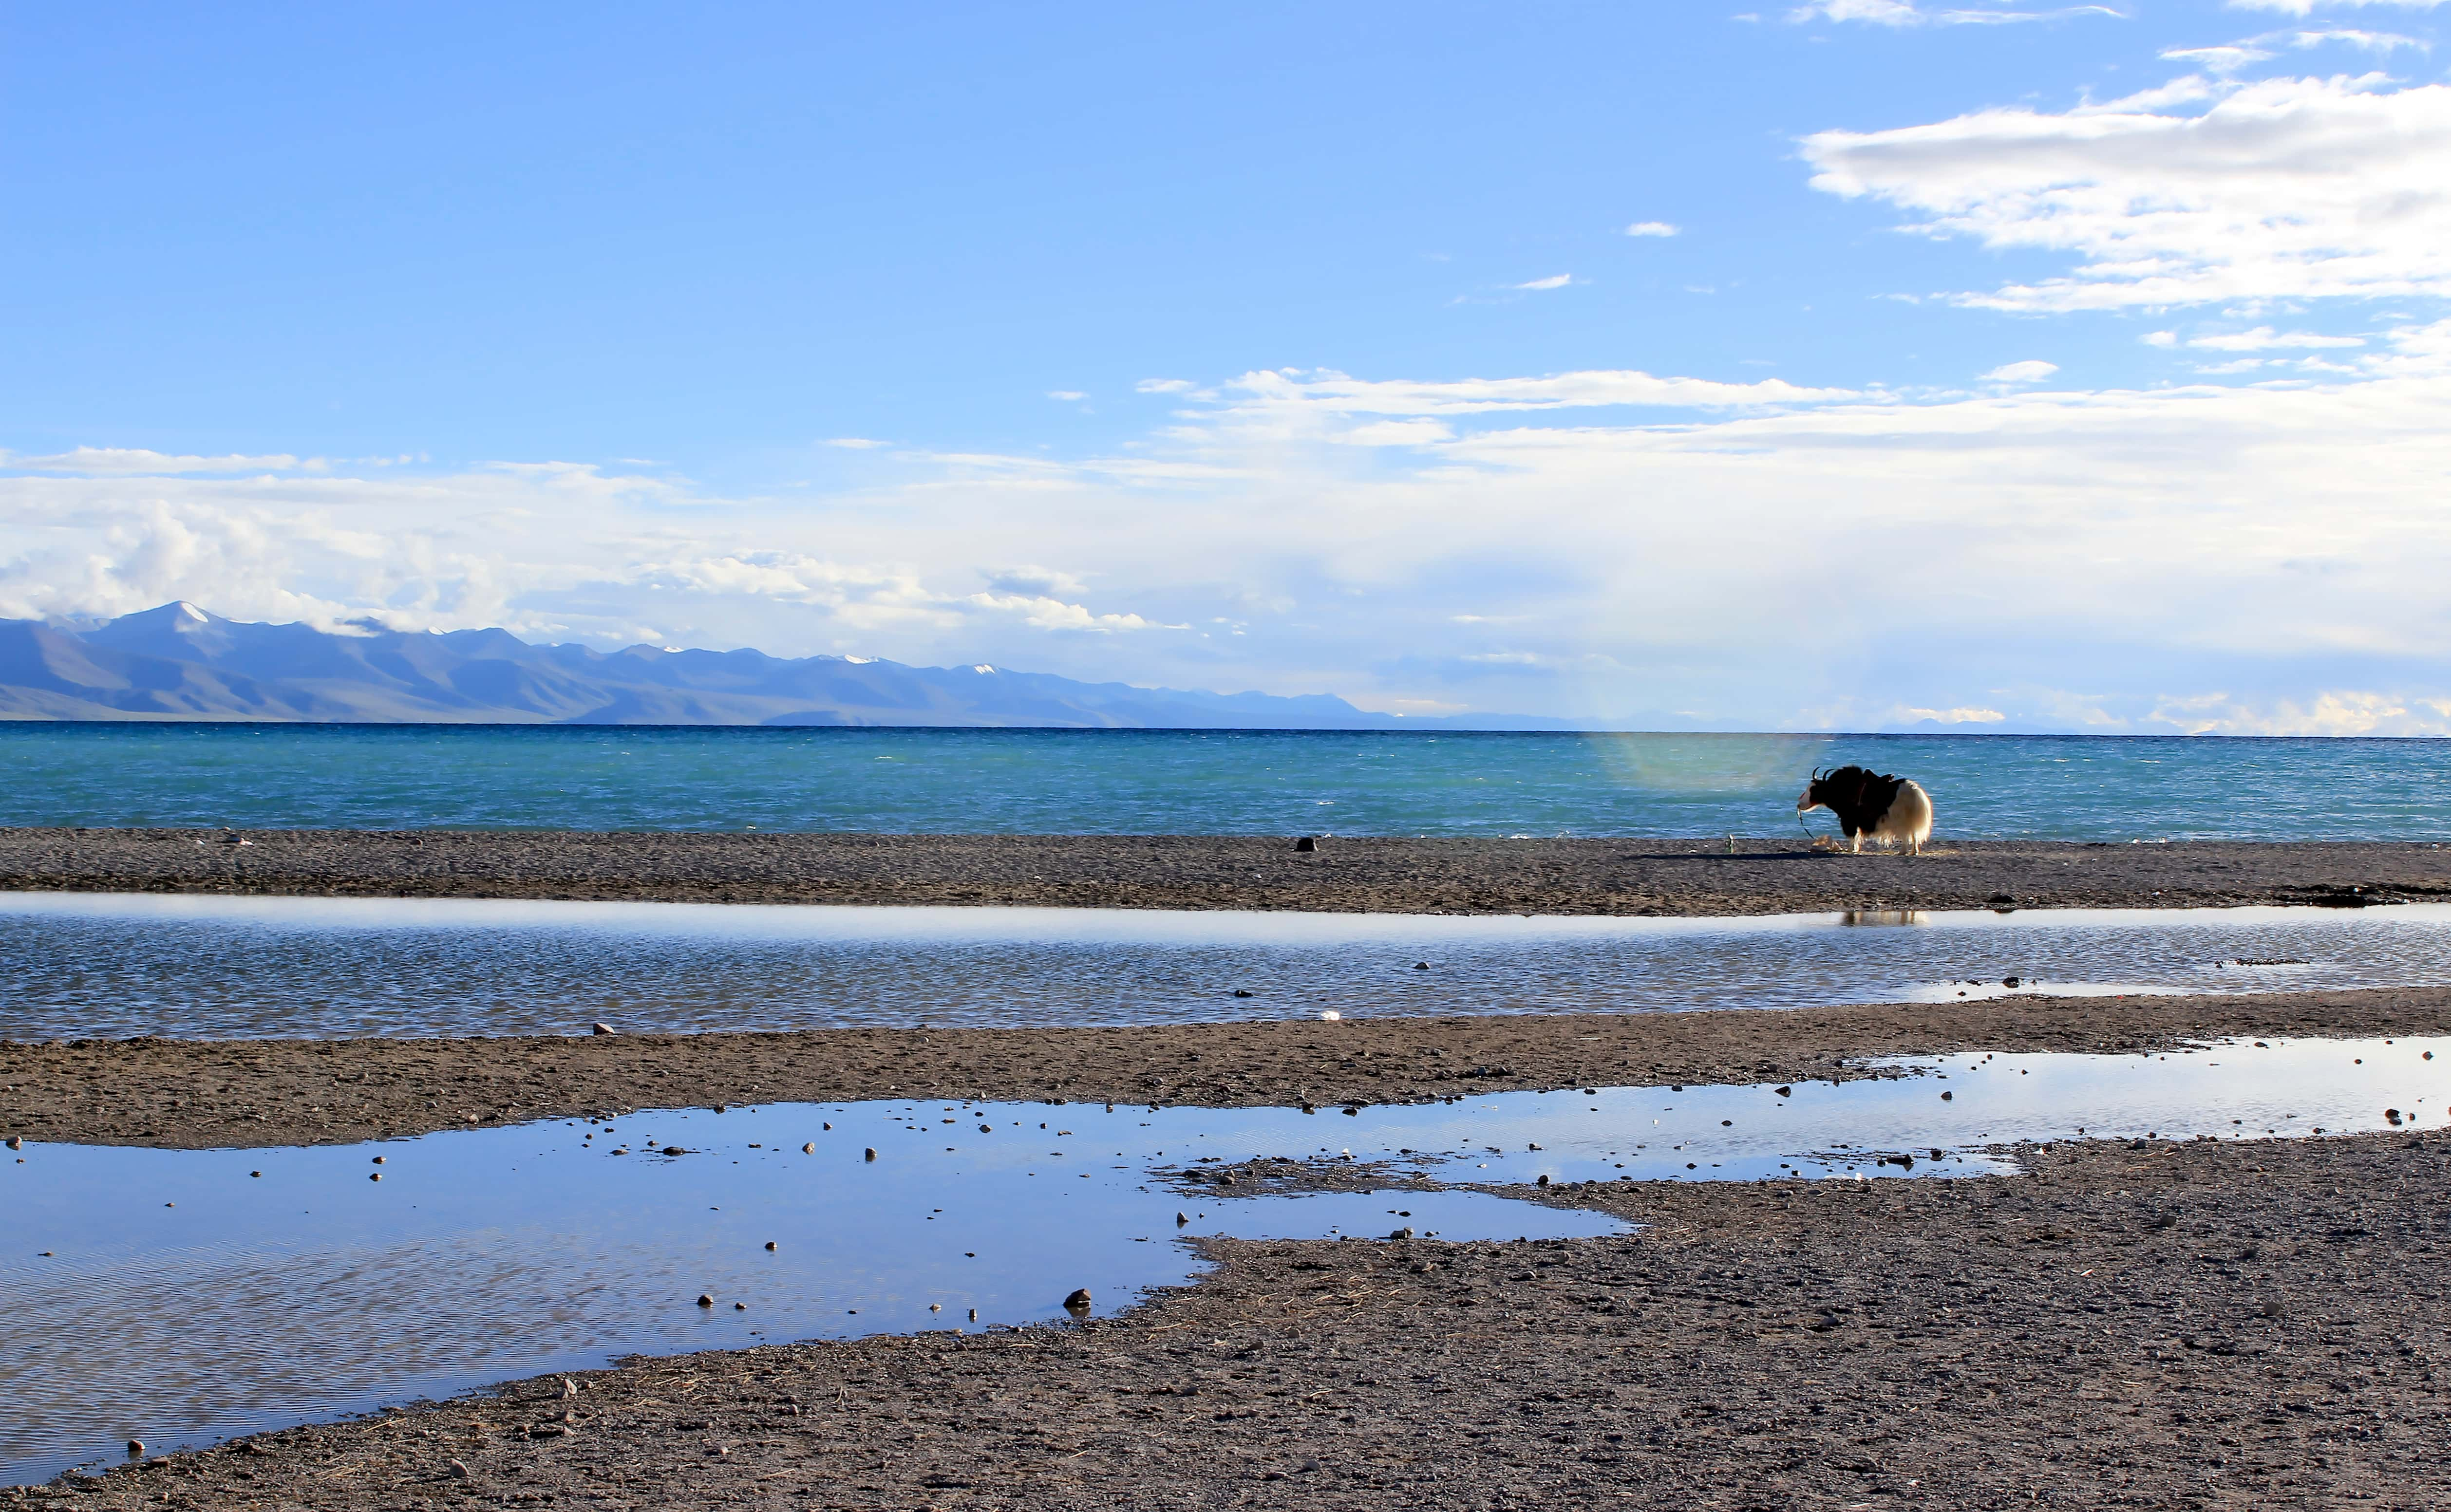 White yak at the Namtso lake in Tibet